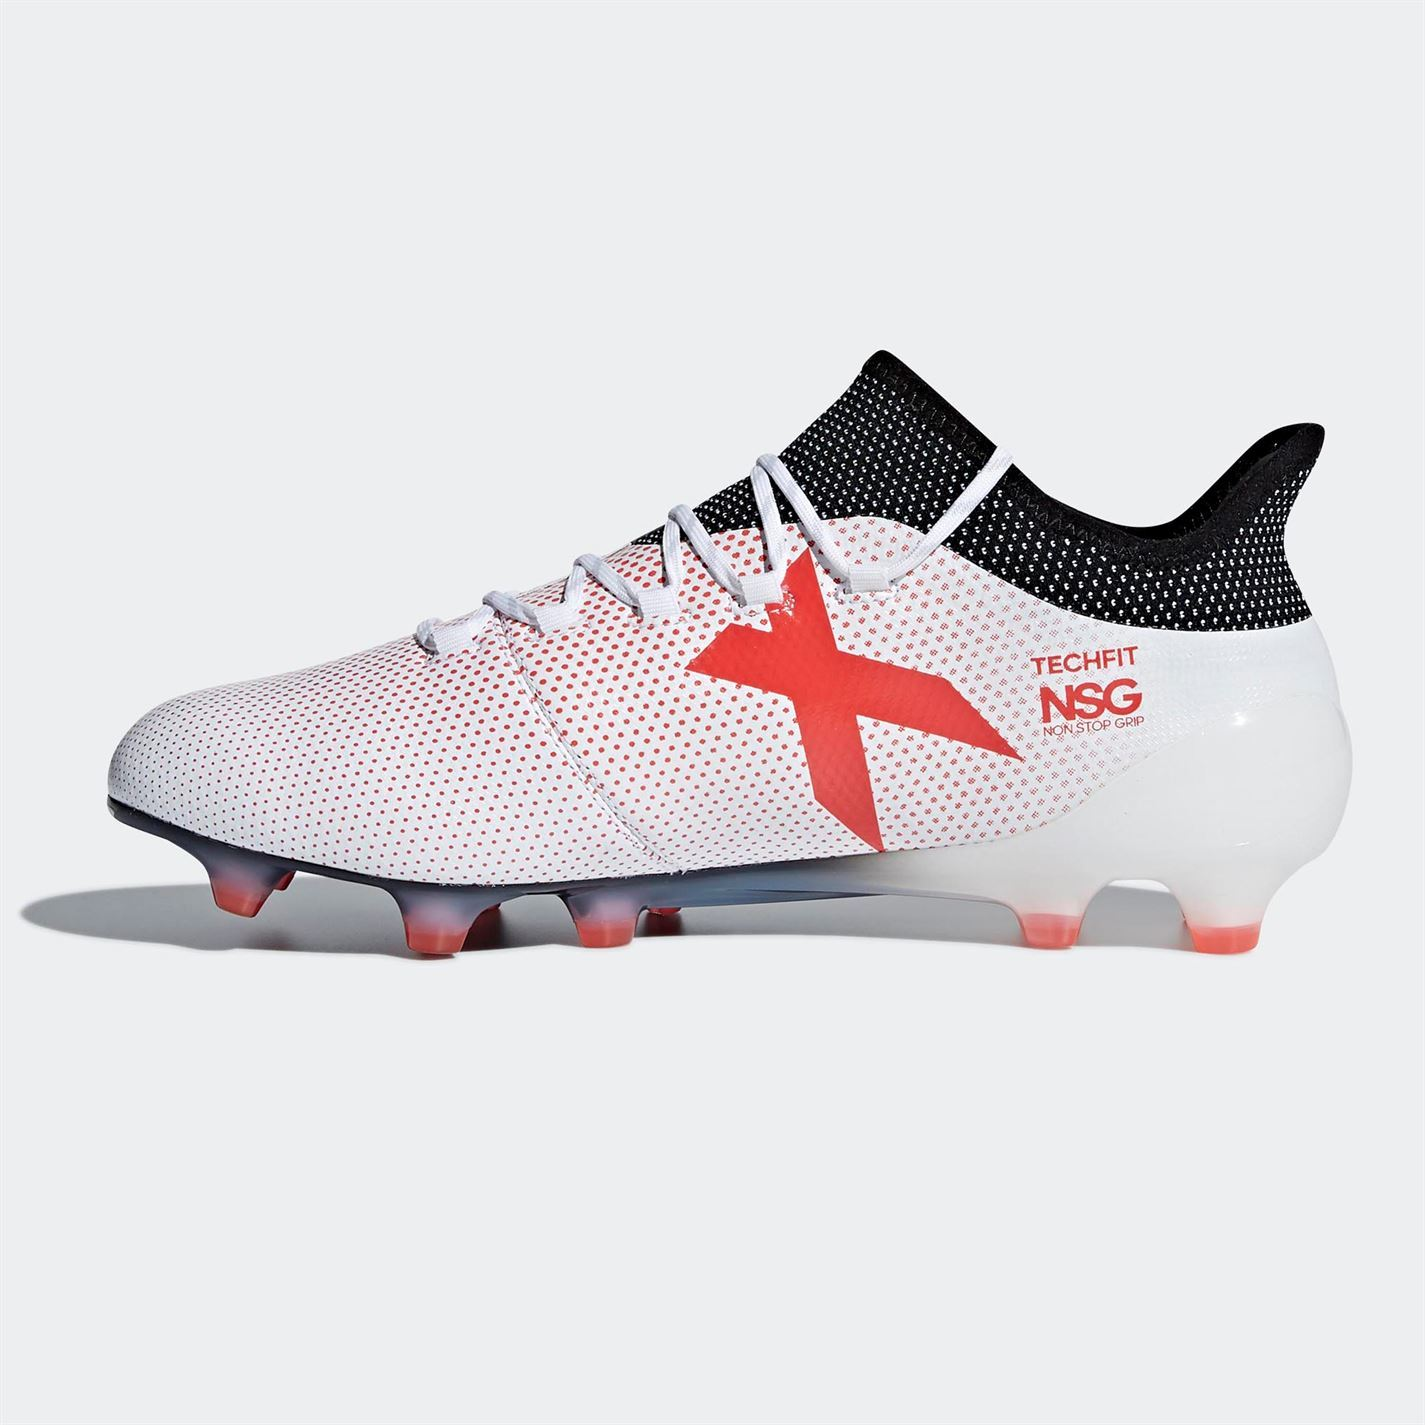 check out dc78d c983c ... adidas X 17.1 FG Firm Ground Football Boots Mens White Soccer Shoes  Cleats